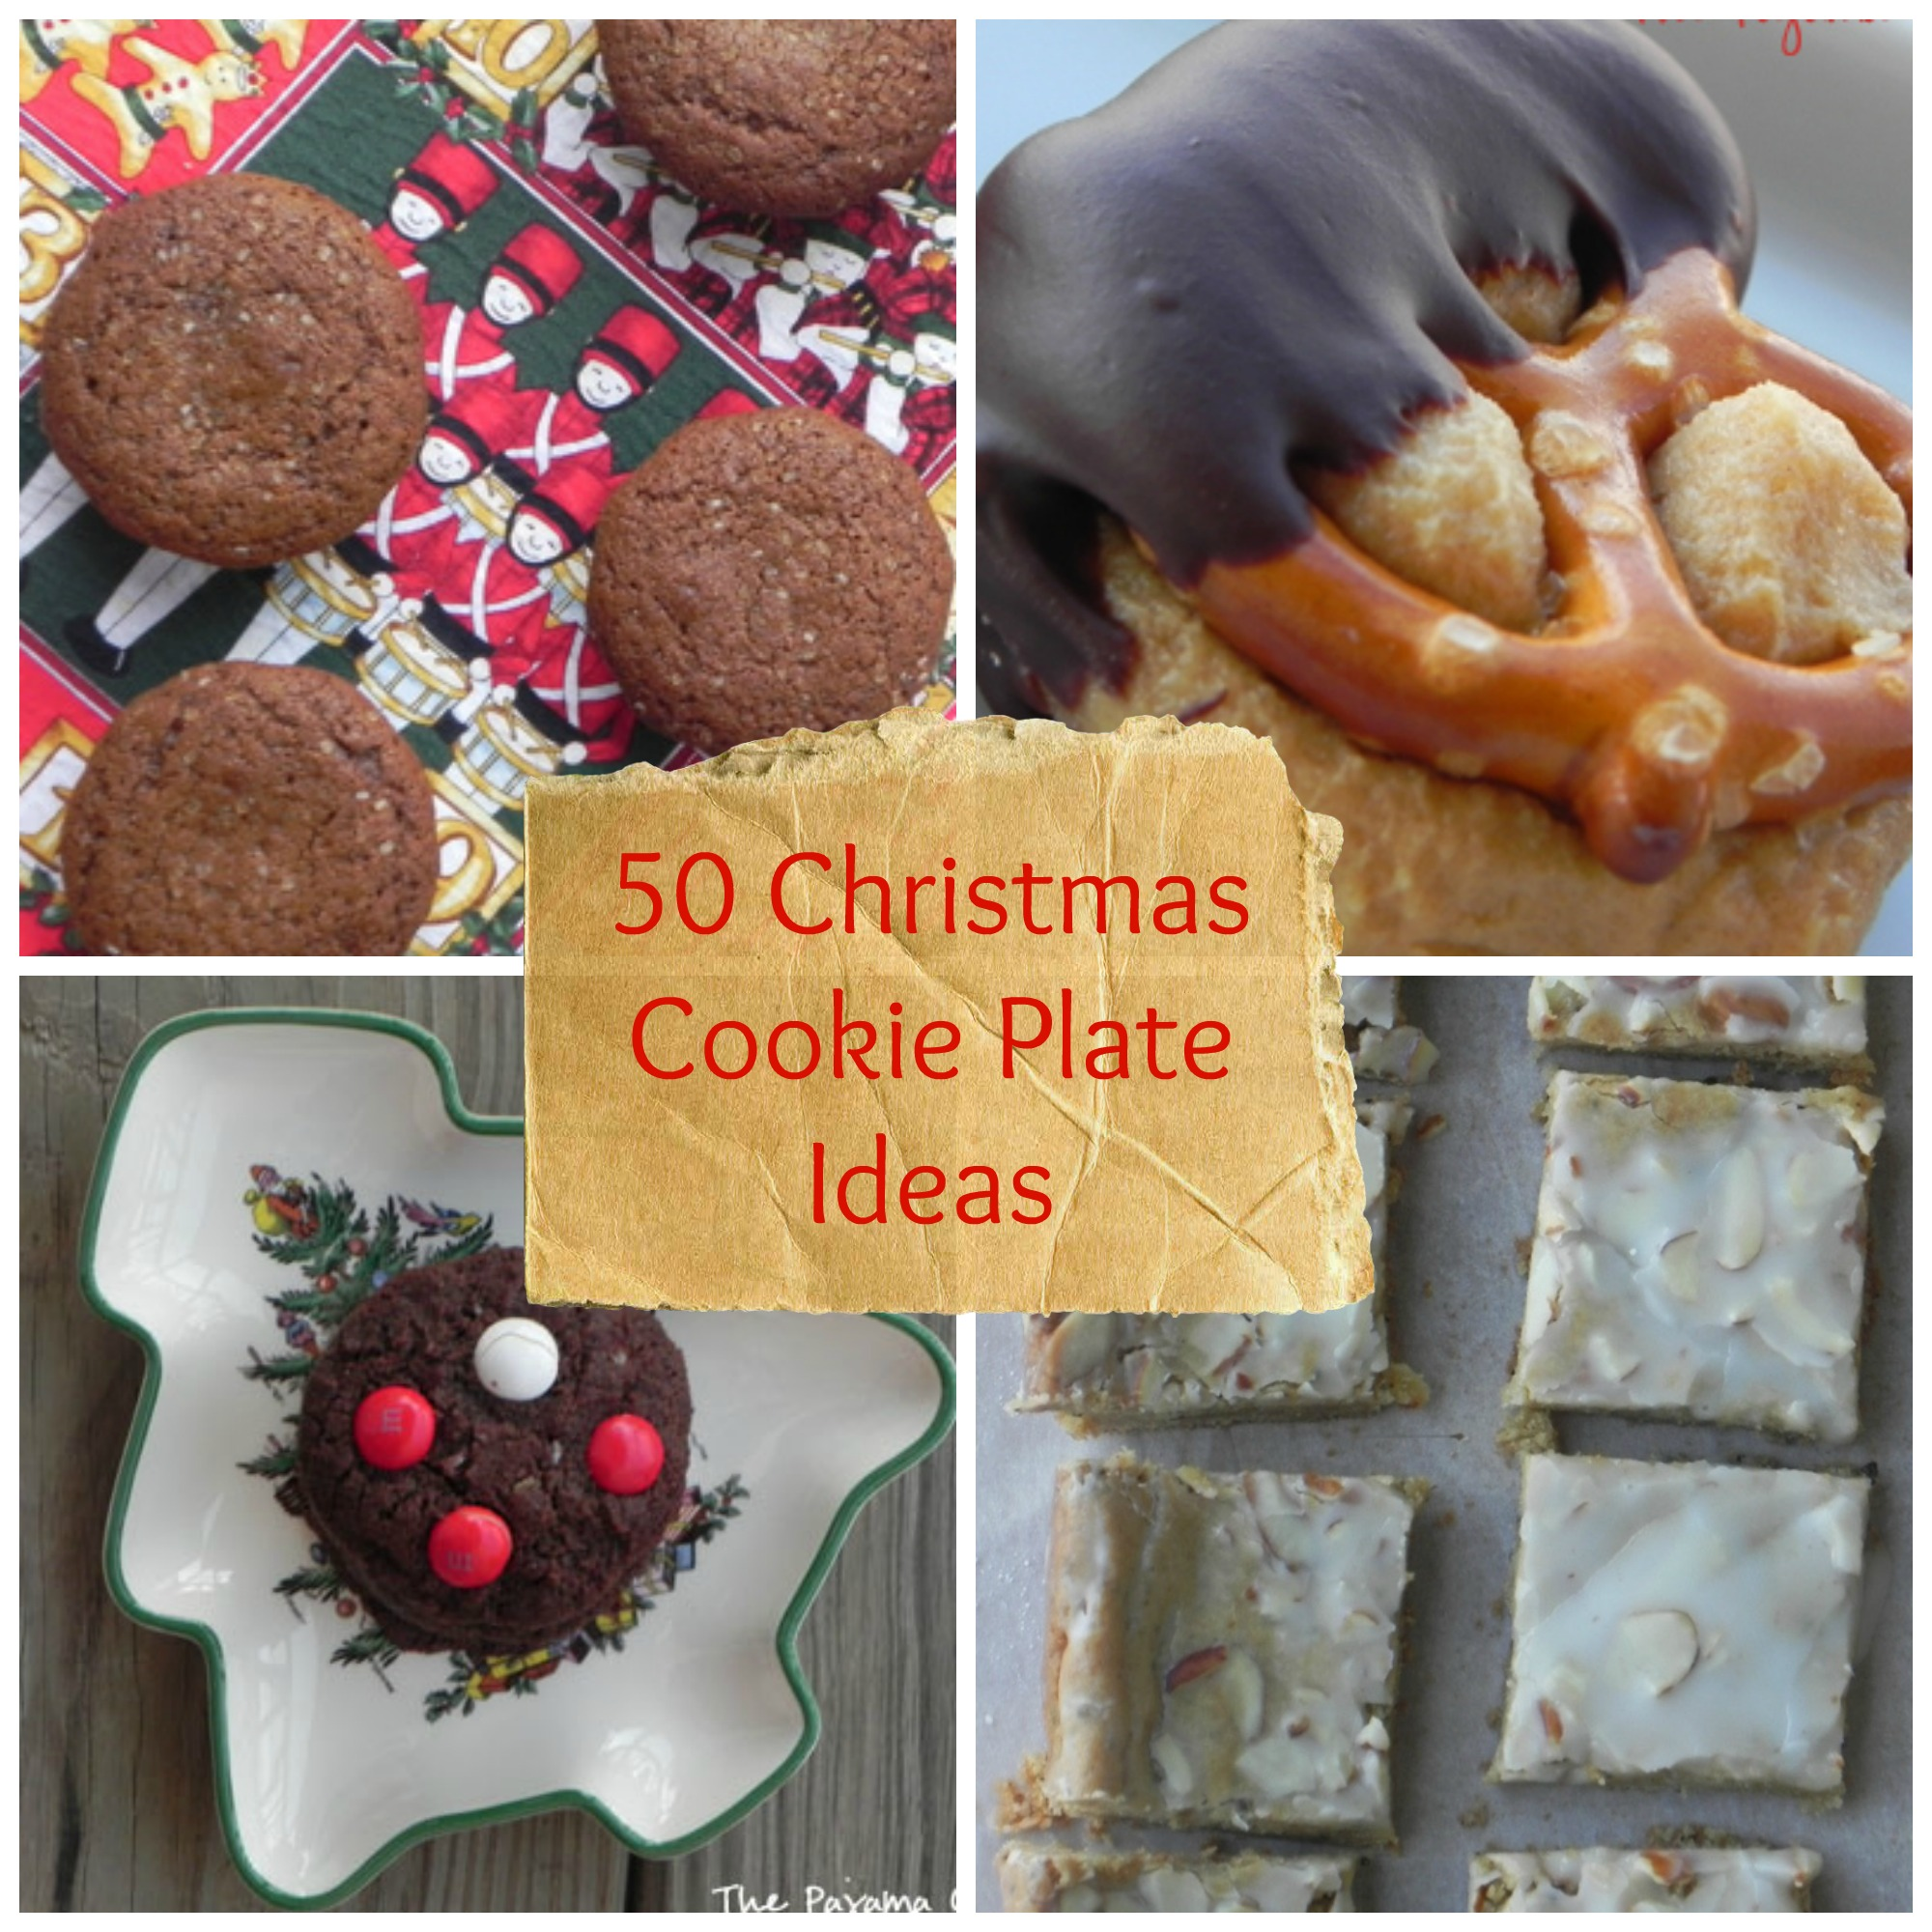 50 Christmas Cookie Plate Ideas Cookies Candy And More The